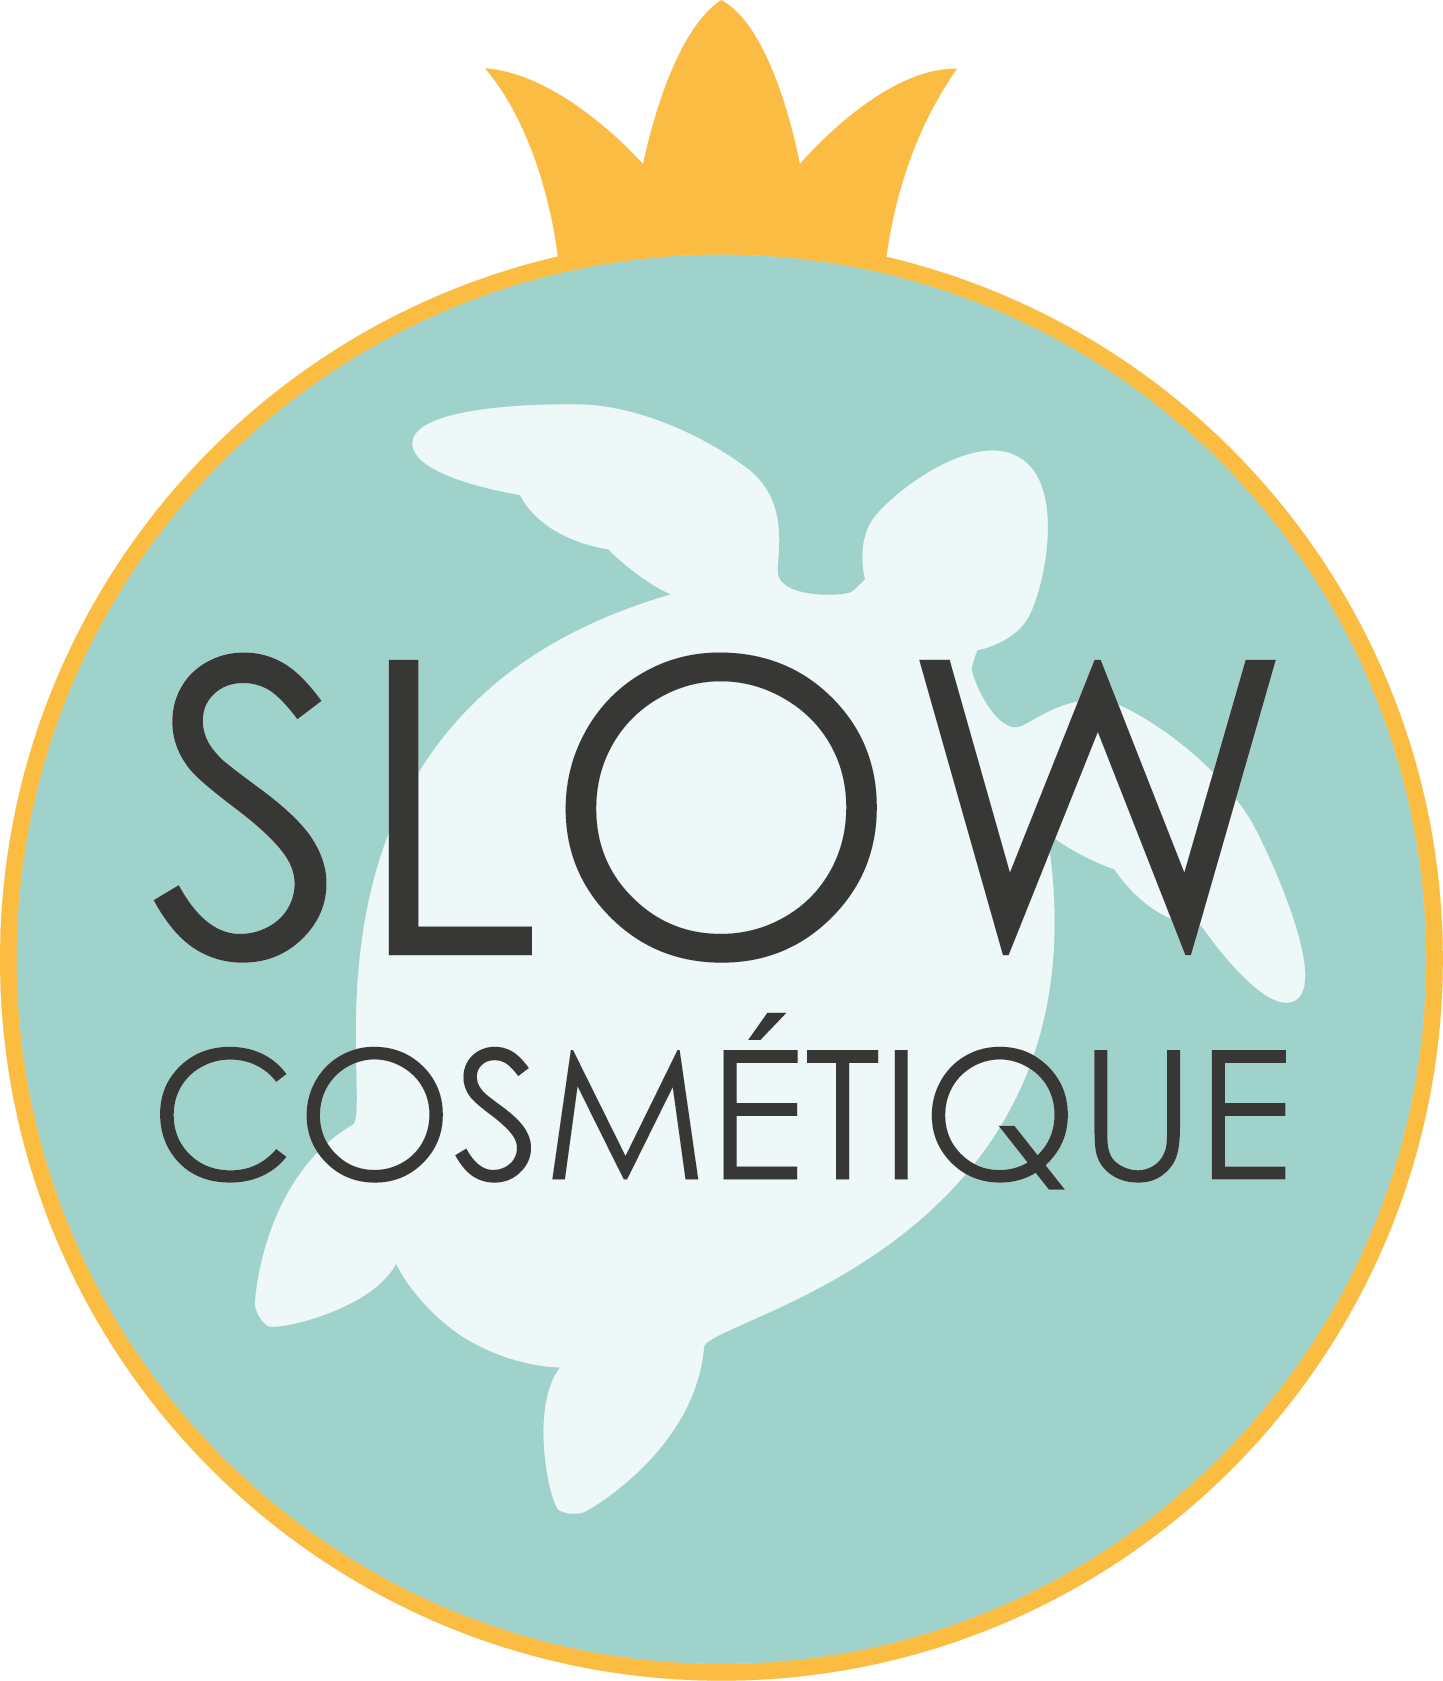 logo slow cosmetique 300